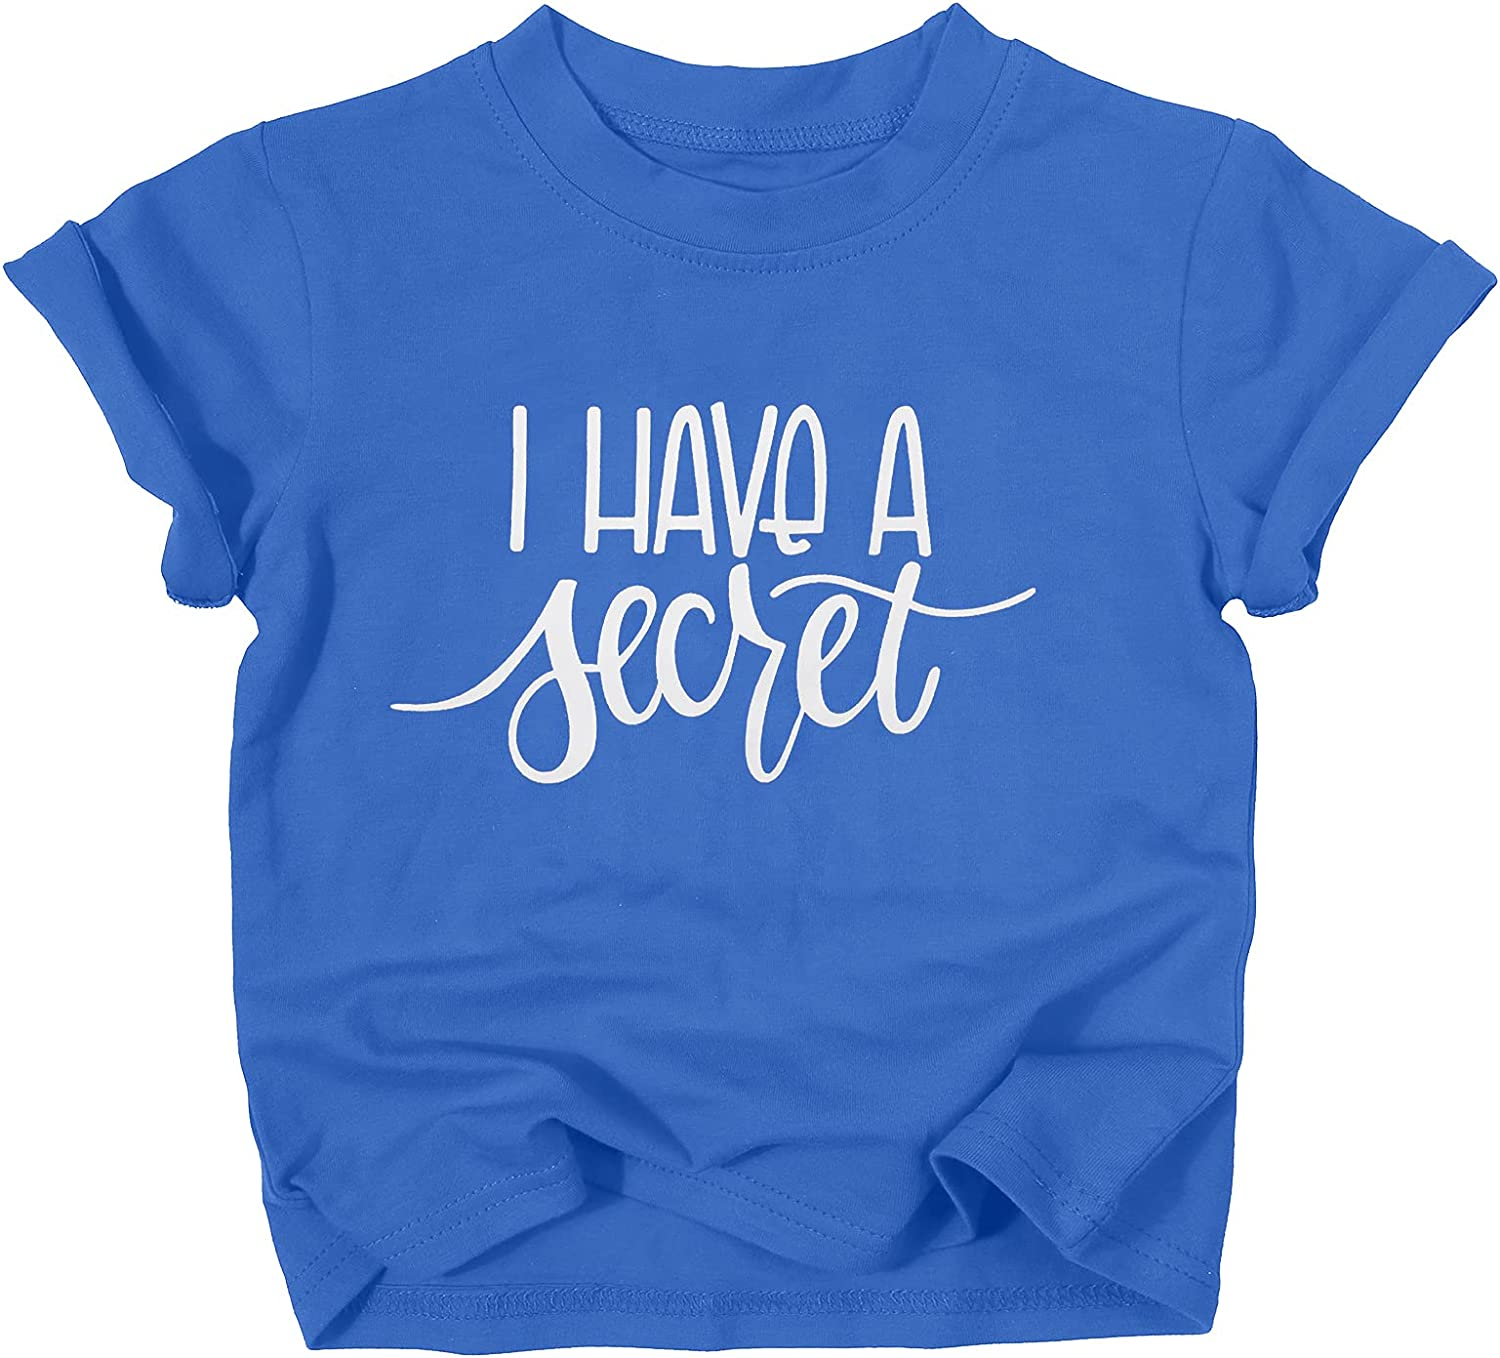 Toddler Baby Girl Tshirt Big Sister Announcement Shirt I'm Going to Be A Big Sister Clothes Tops